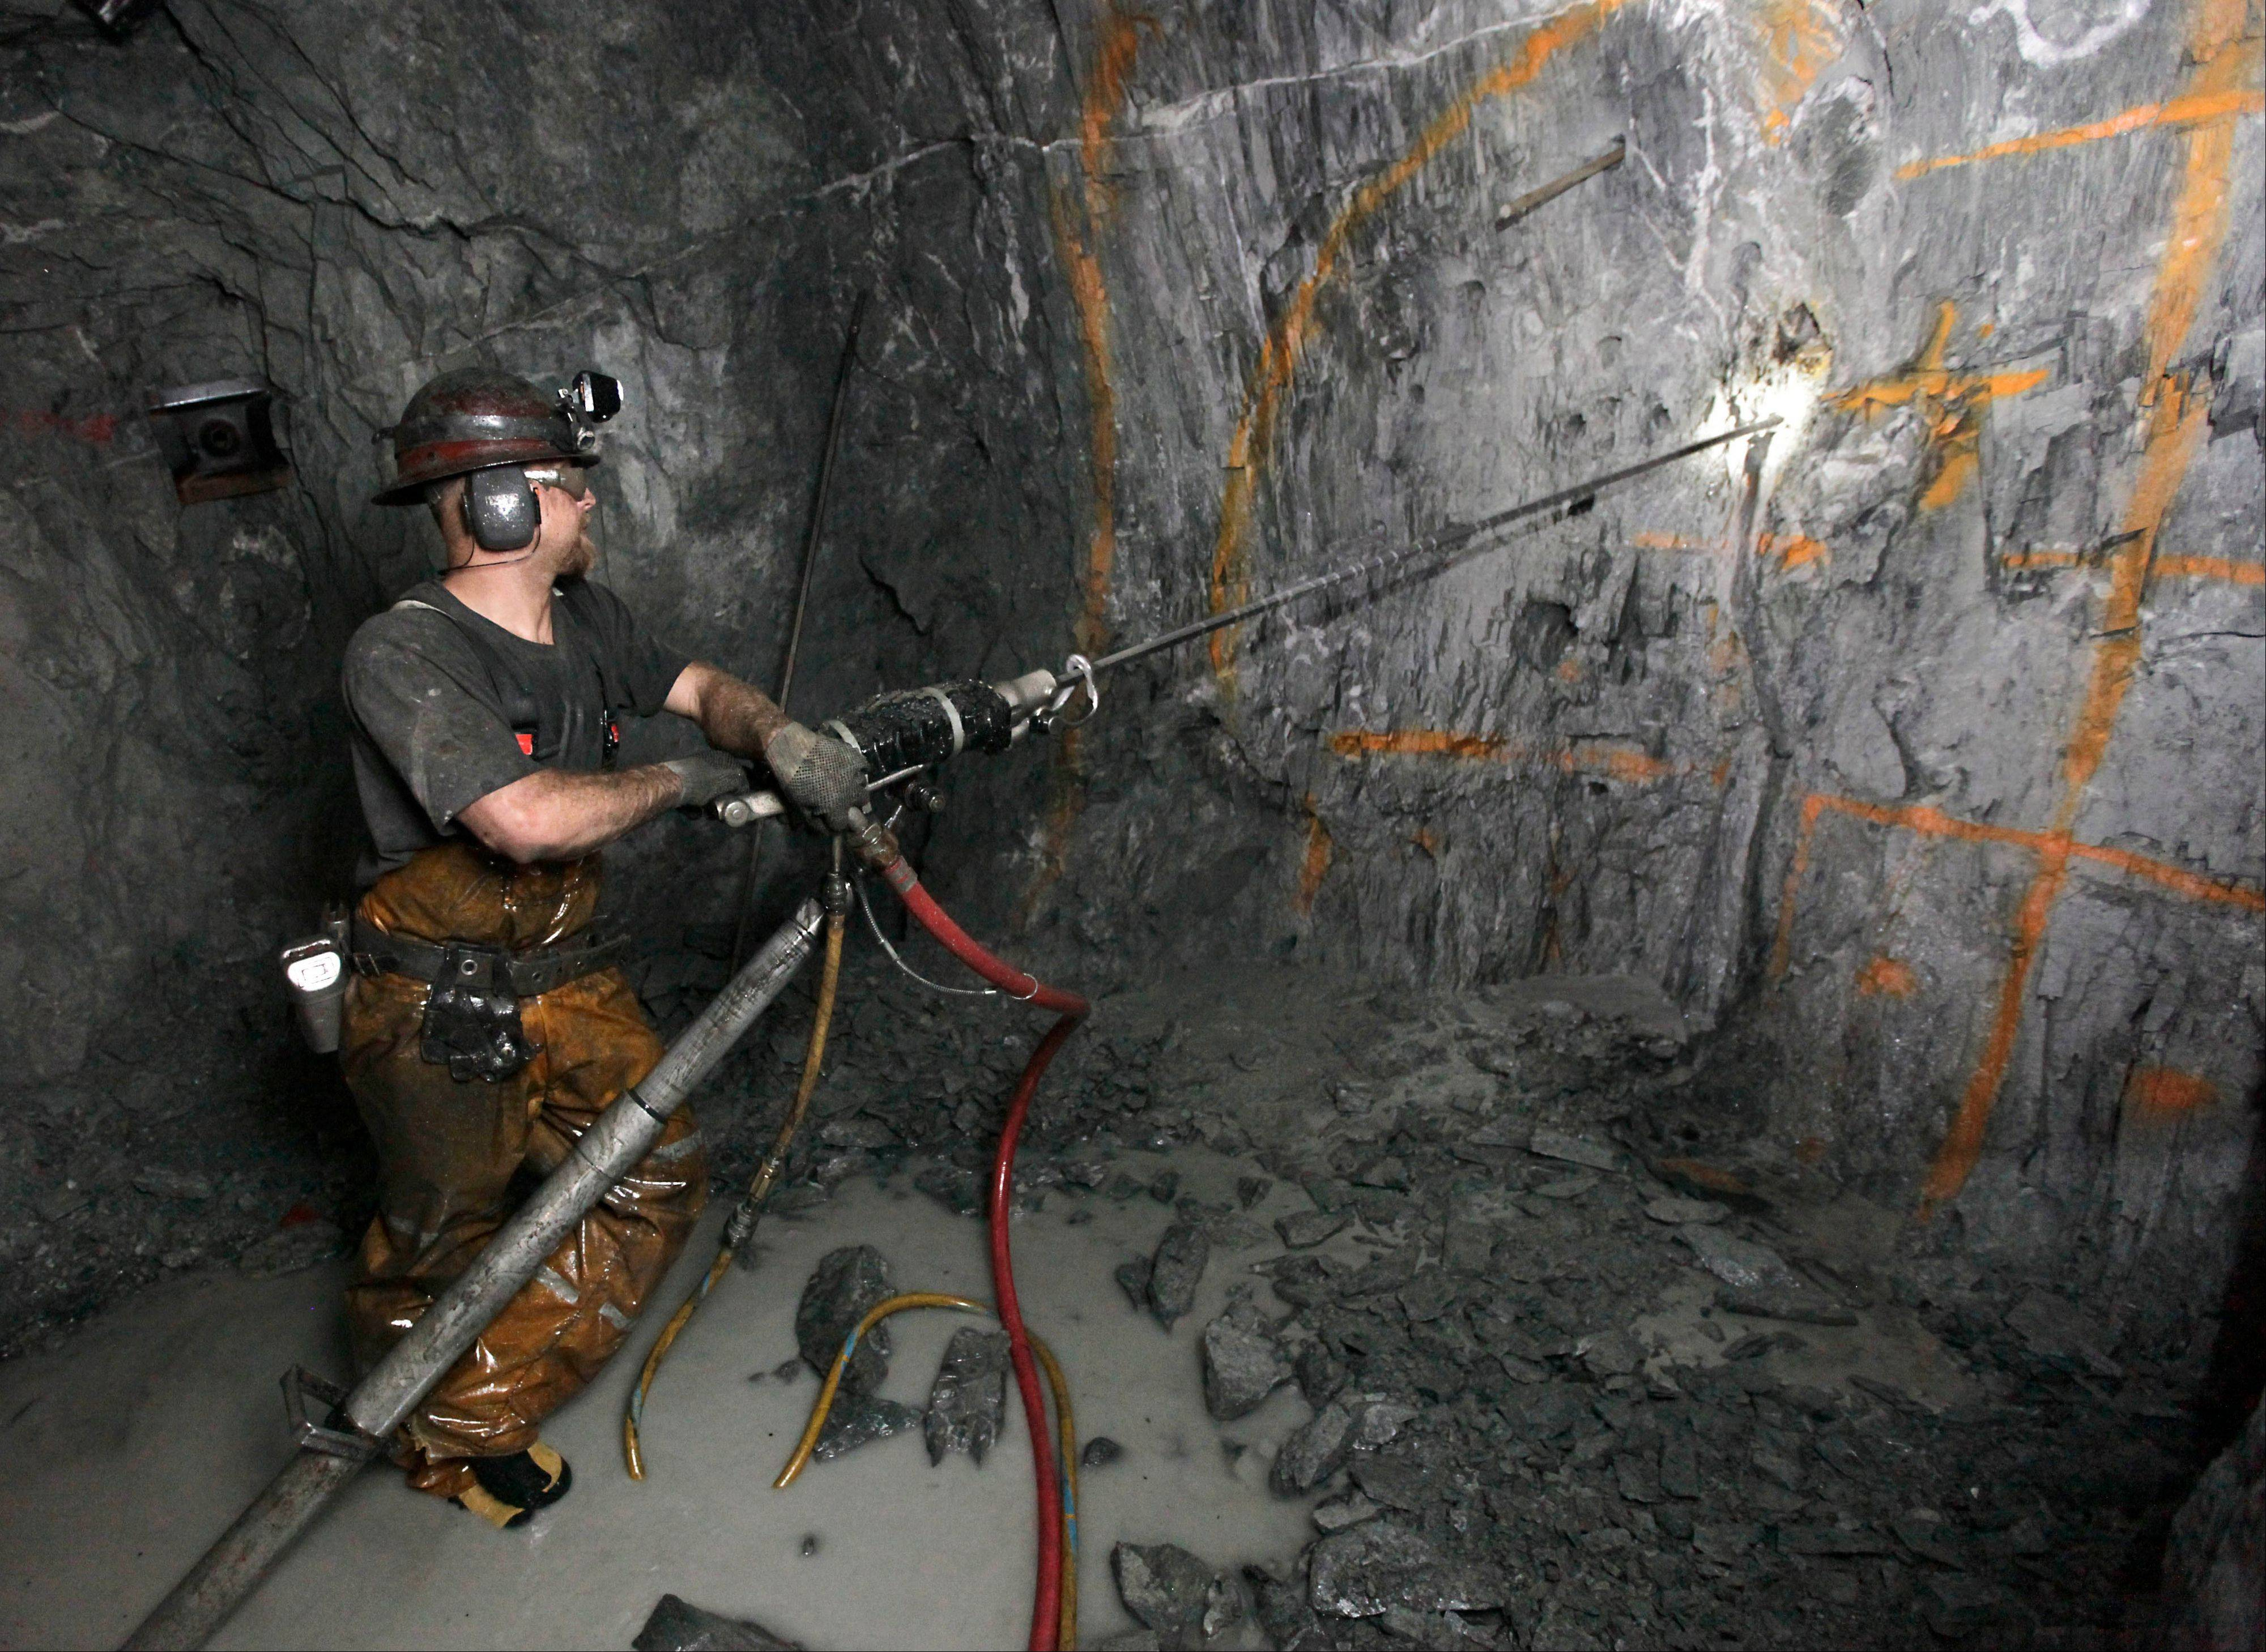 Miner Keith Emerald uses a pneumatic drill to drill holes that will be packed with explosives to blast into the sold rock wall at the Sutter Gold Mining Co's mines near in Sutter Creek, Calif.